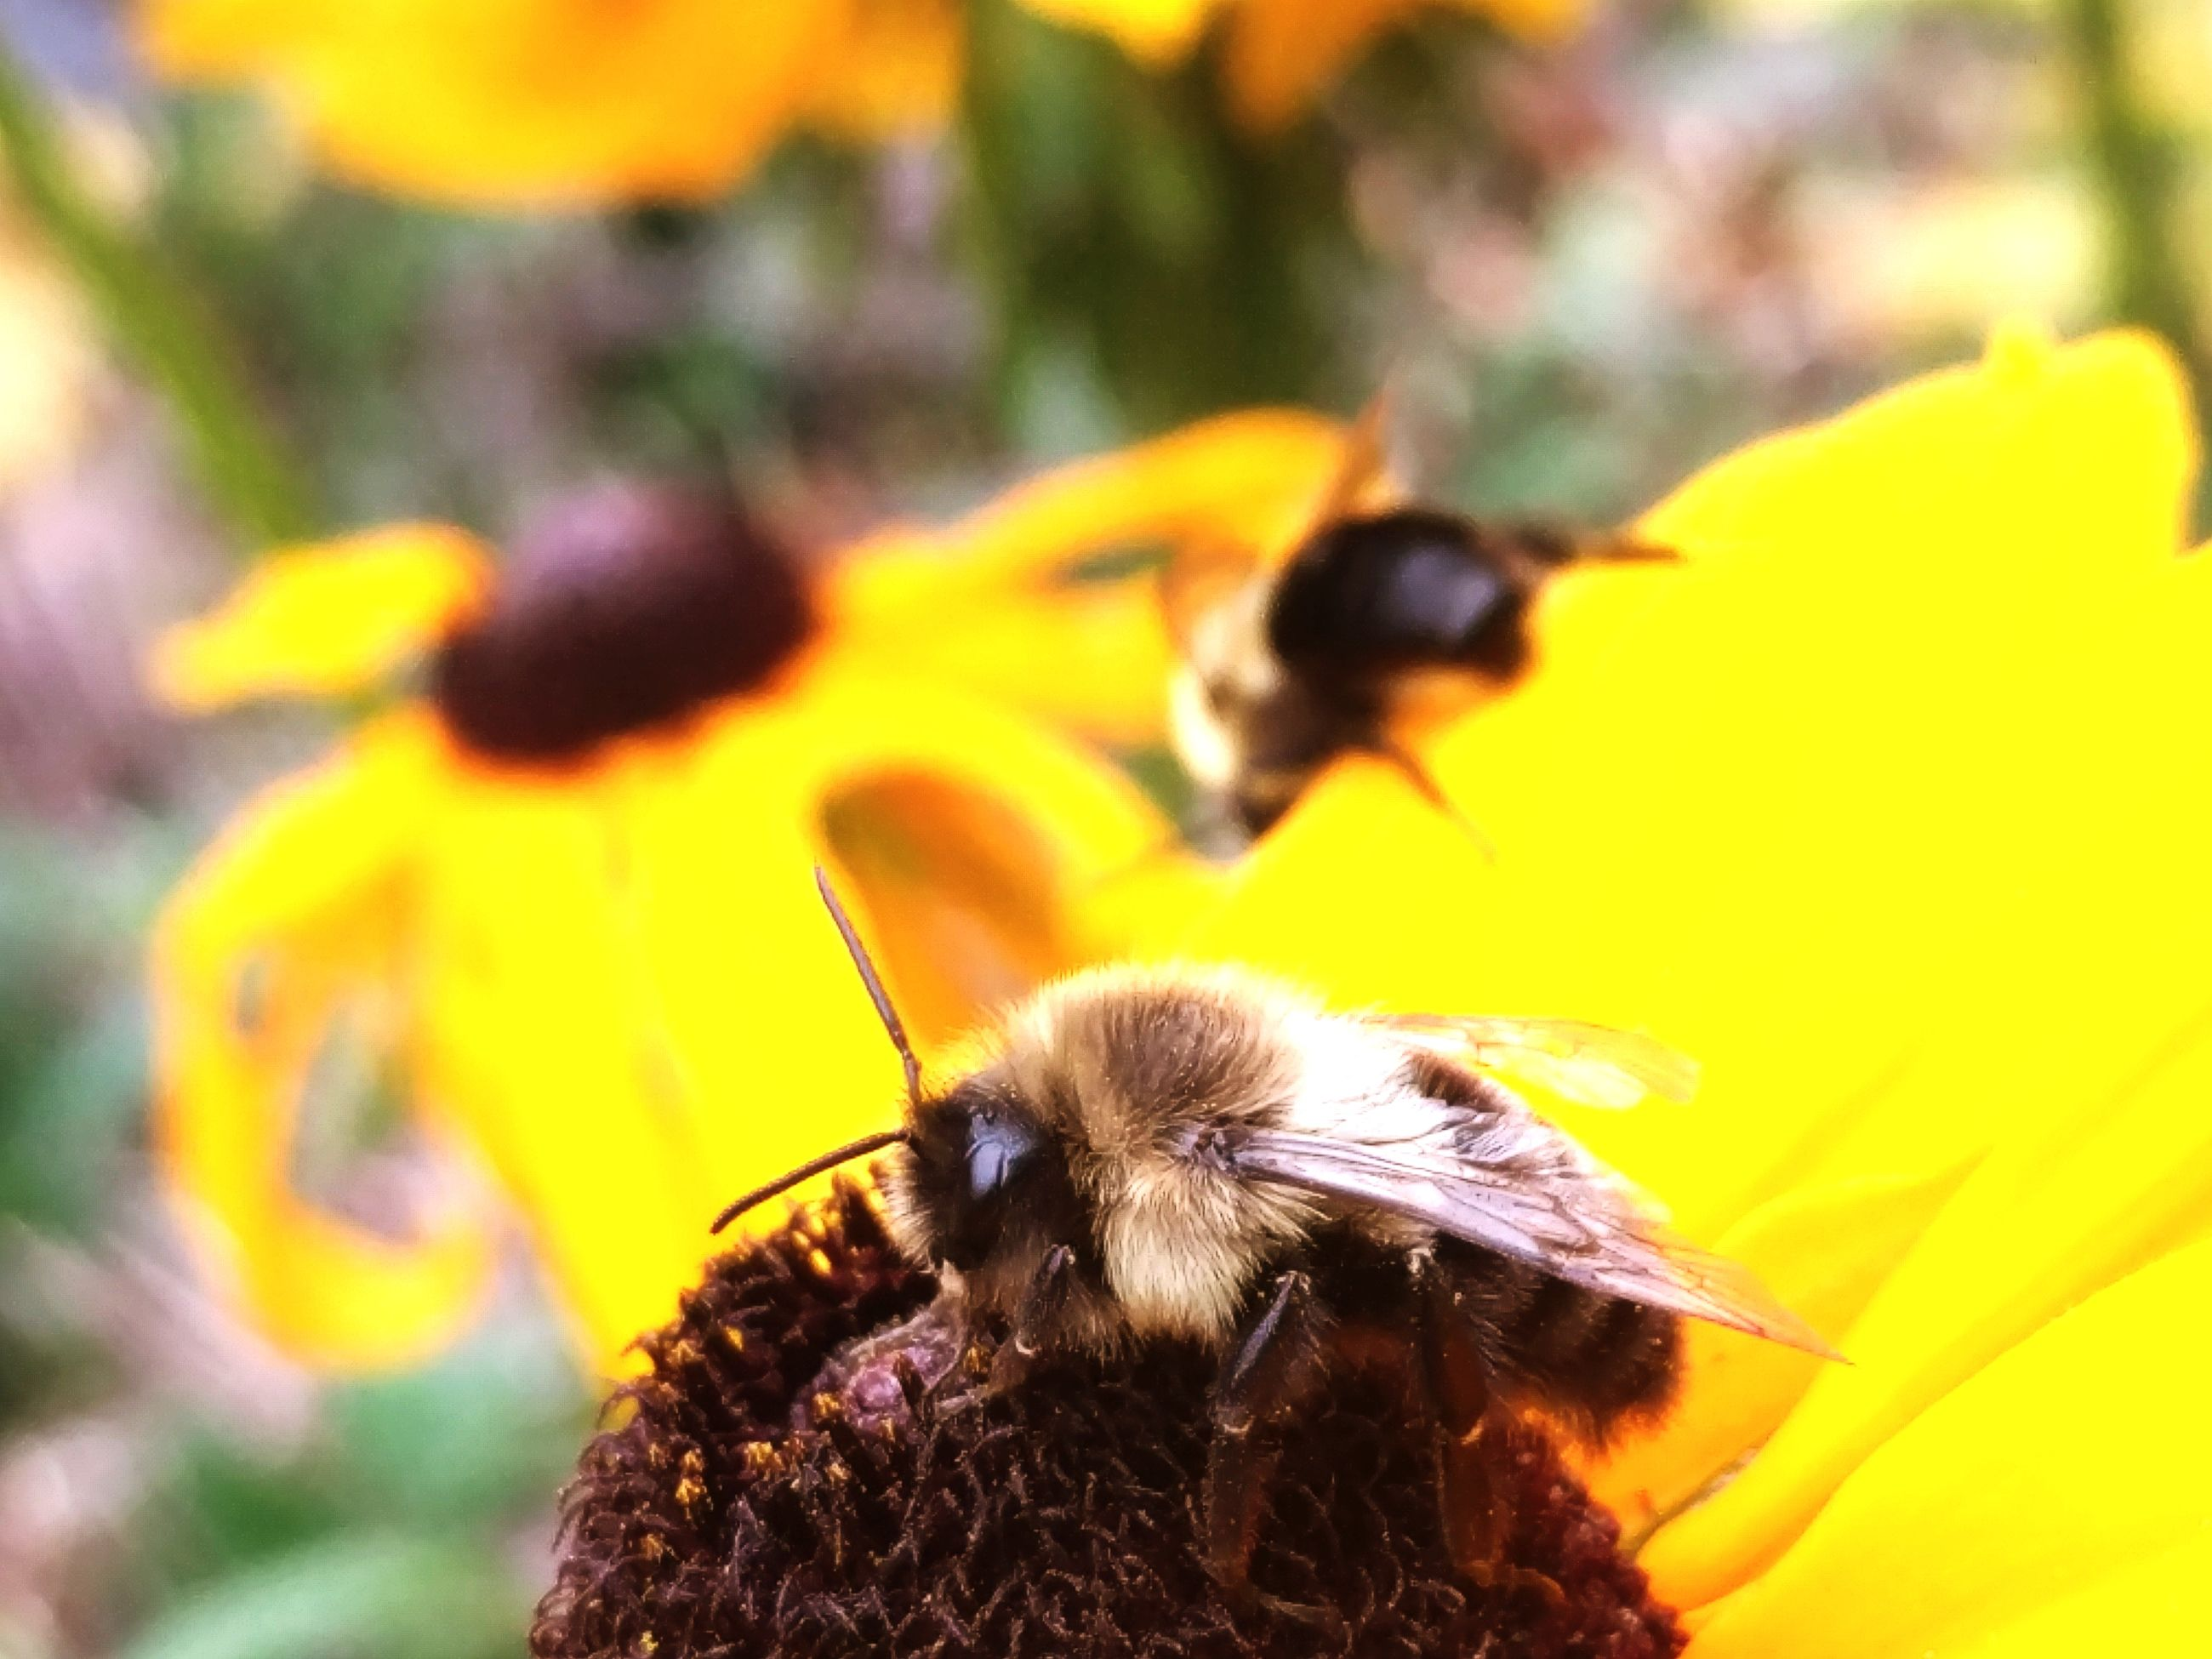 animals in the wild, insect, animal themes, yellow, flower, one animal, nature, outdoors, close-up, bee, day, petal, animal wildlife, fragility, growth, beauty in nature, no people, bumblebee, flower head, pollination, freshness